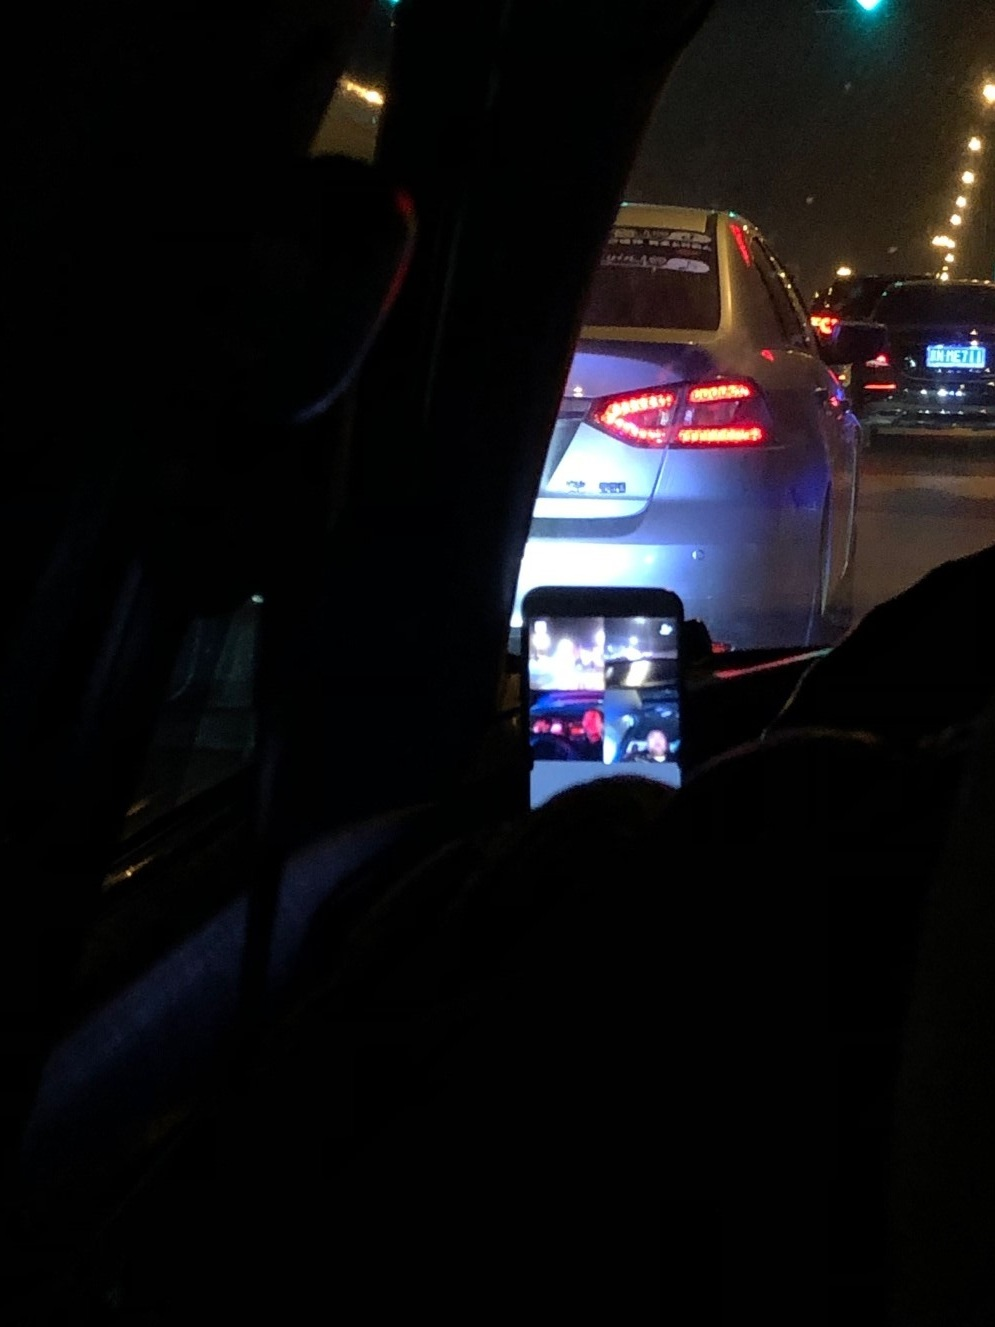 Cab driver on his 4-way video call